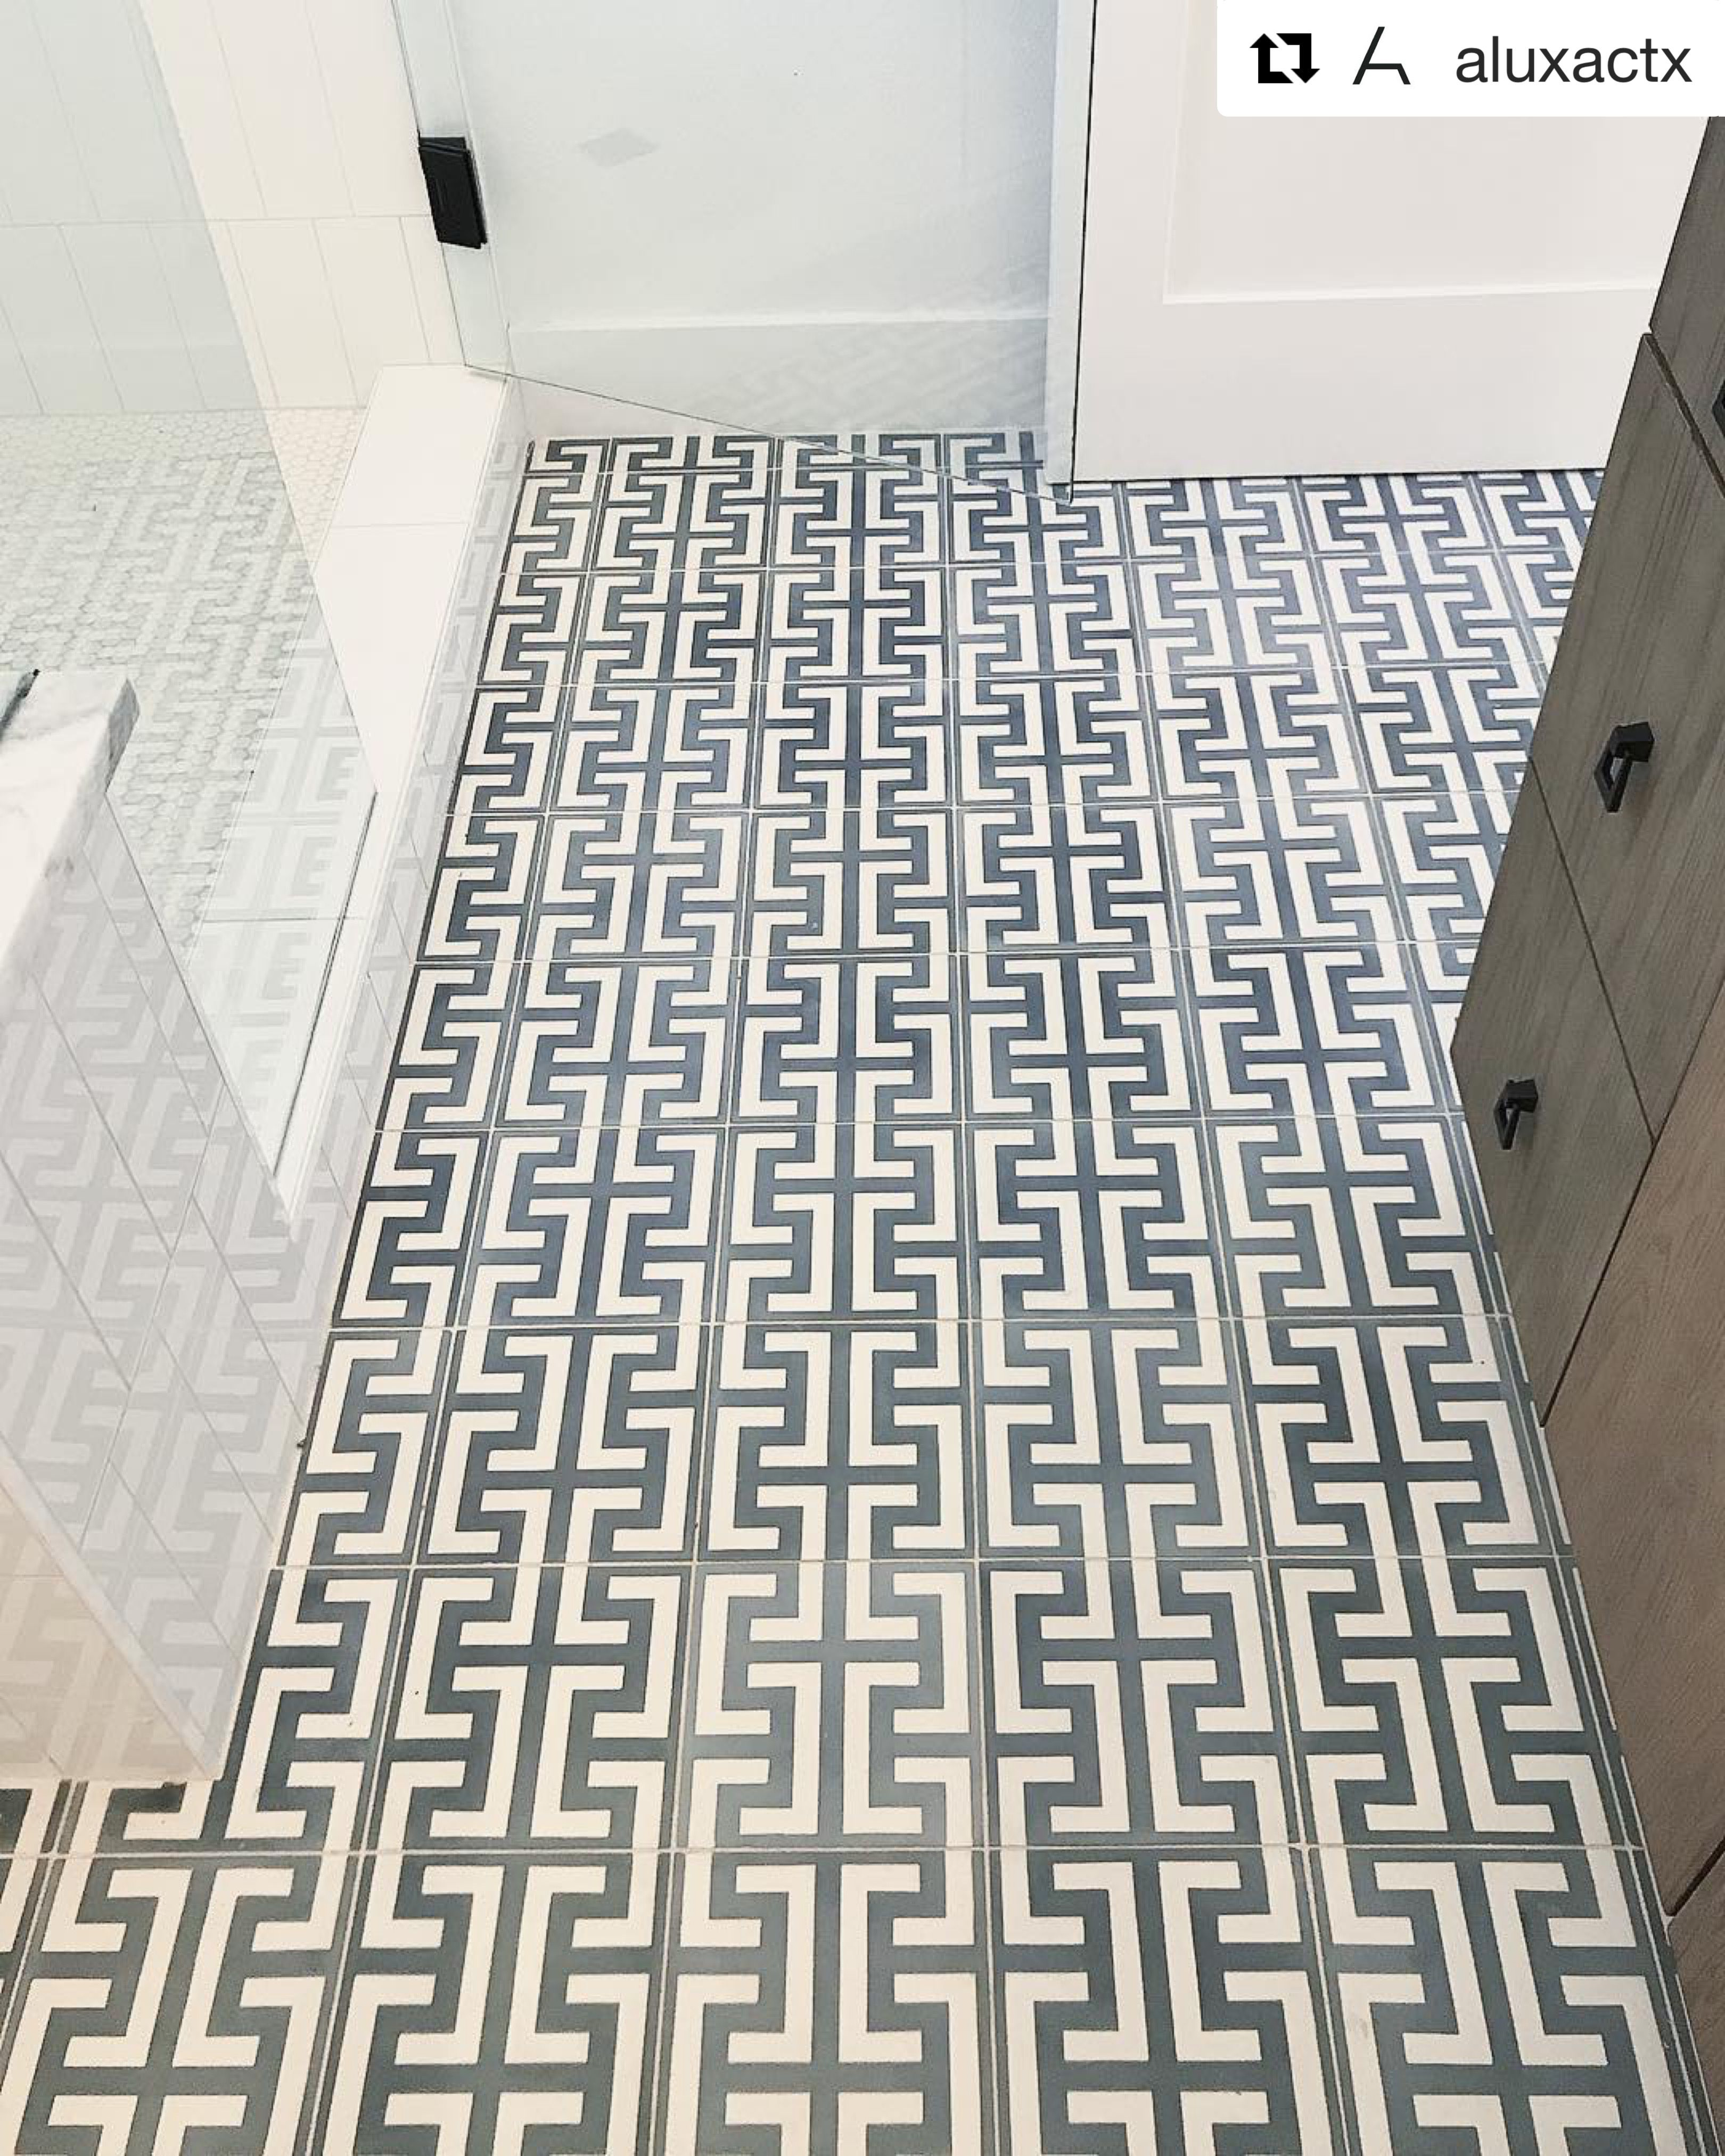 Our Zeus 2013 pattern cement tile installed in this awesome bathroom renovation 🔨 Builder aluxactx Design melisaclementdesigns Architectural